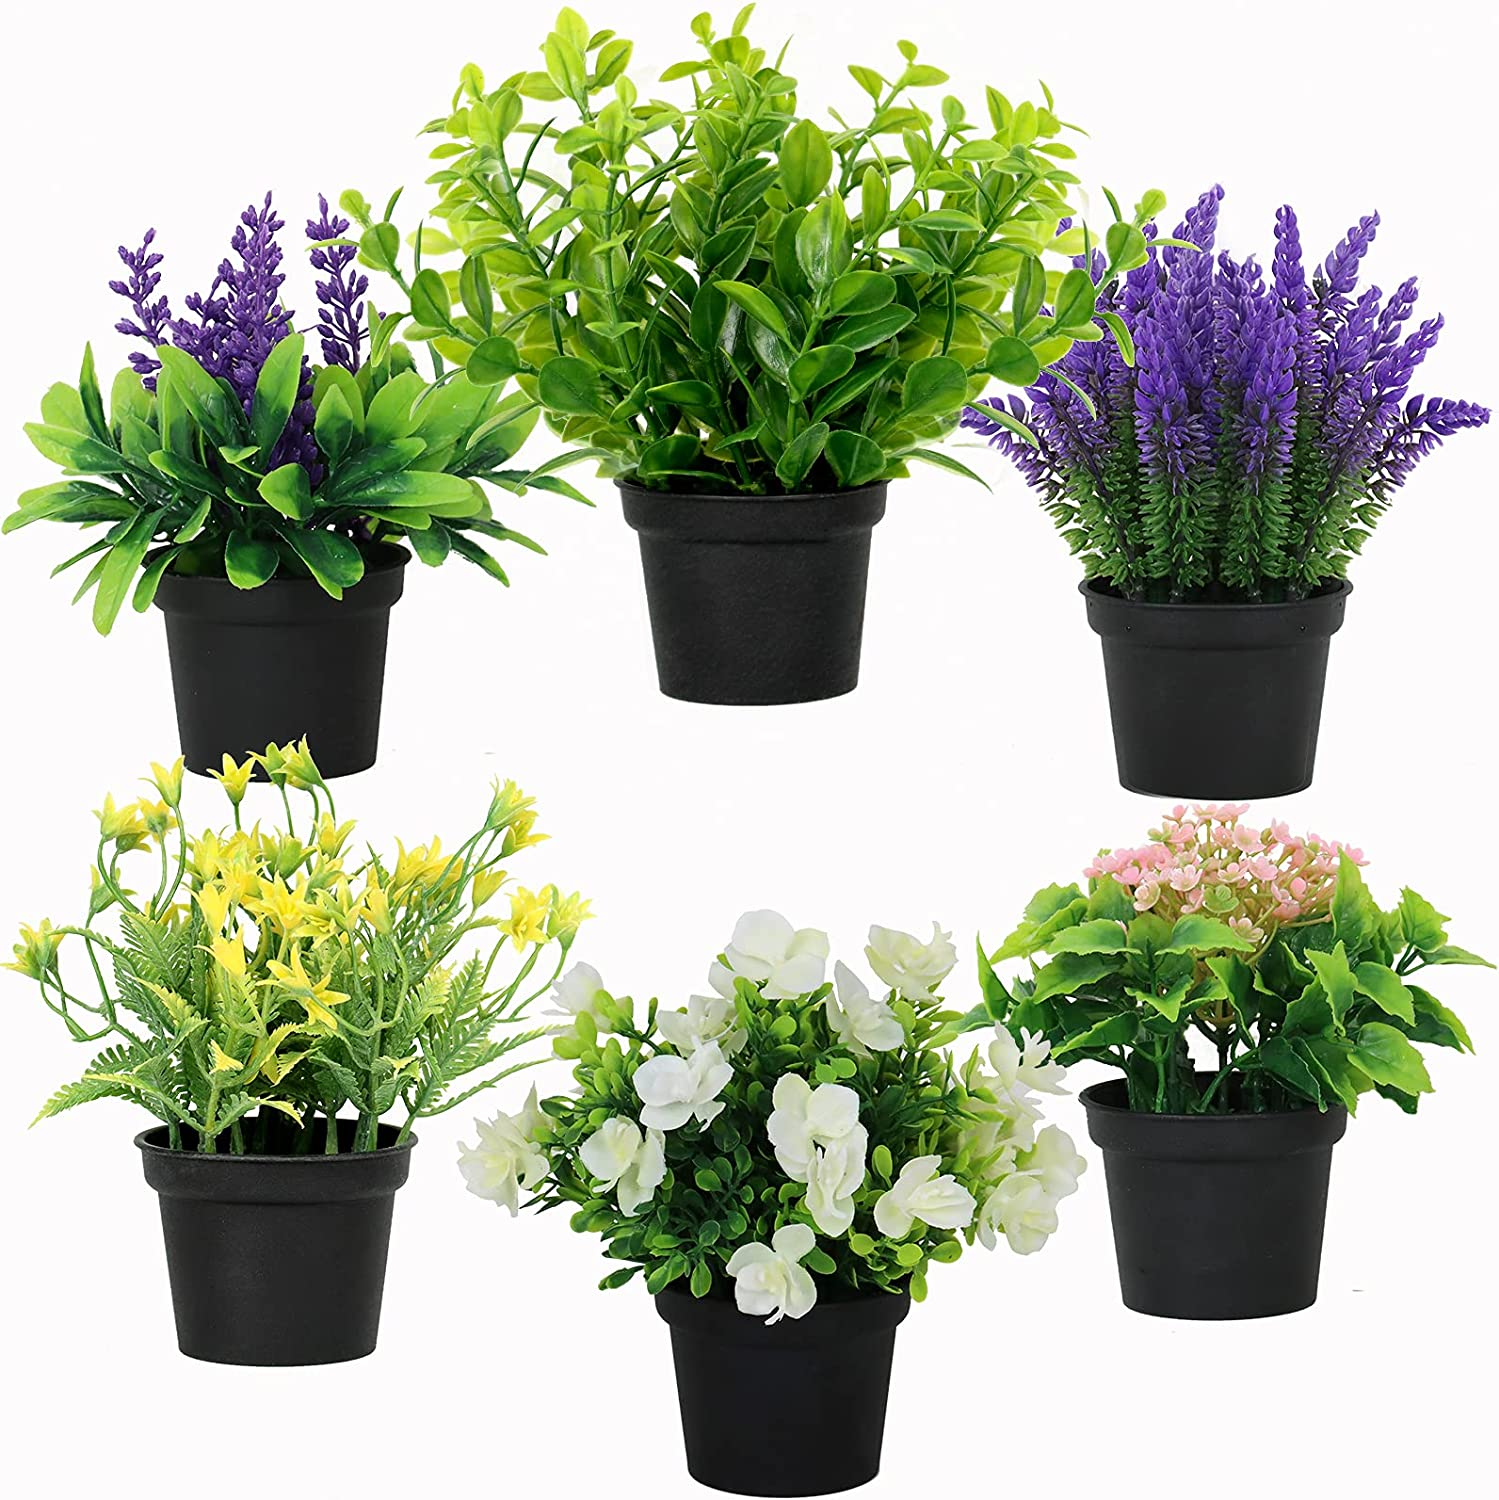 Artificial Potted Plants Green Artificial Plants & Flowers Lavender Flowers Money Leaf Plastic Plant in Pot Set Small Potted Artificial Green Bonsai for Home Decor Outdoor Indoor (6 Packs )